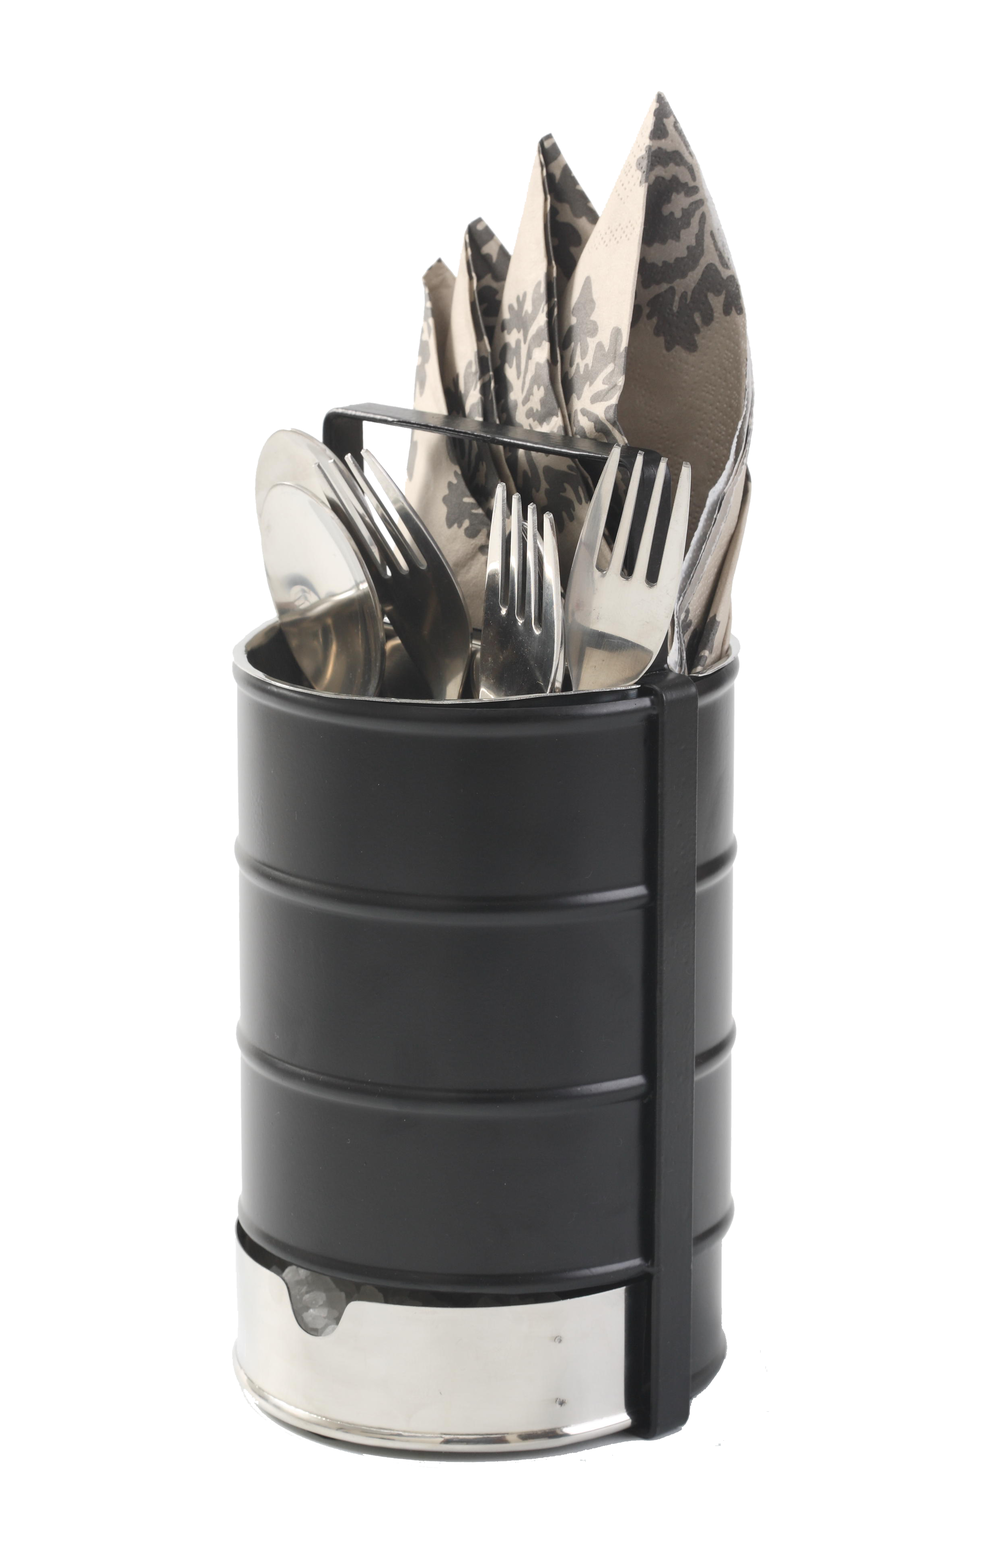 cutlery dabbakeeps napkins and all cutlery including servingspoons handy for large family gatherings